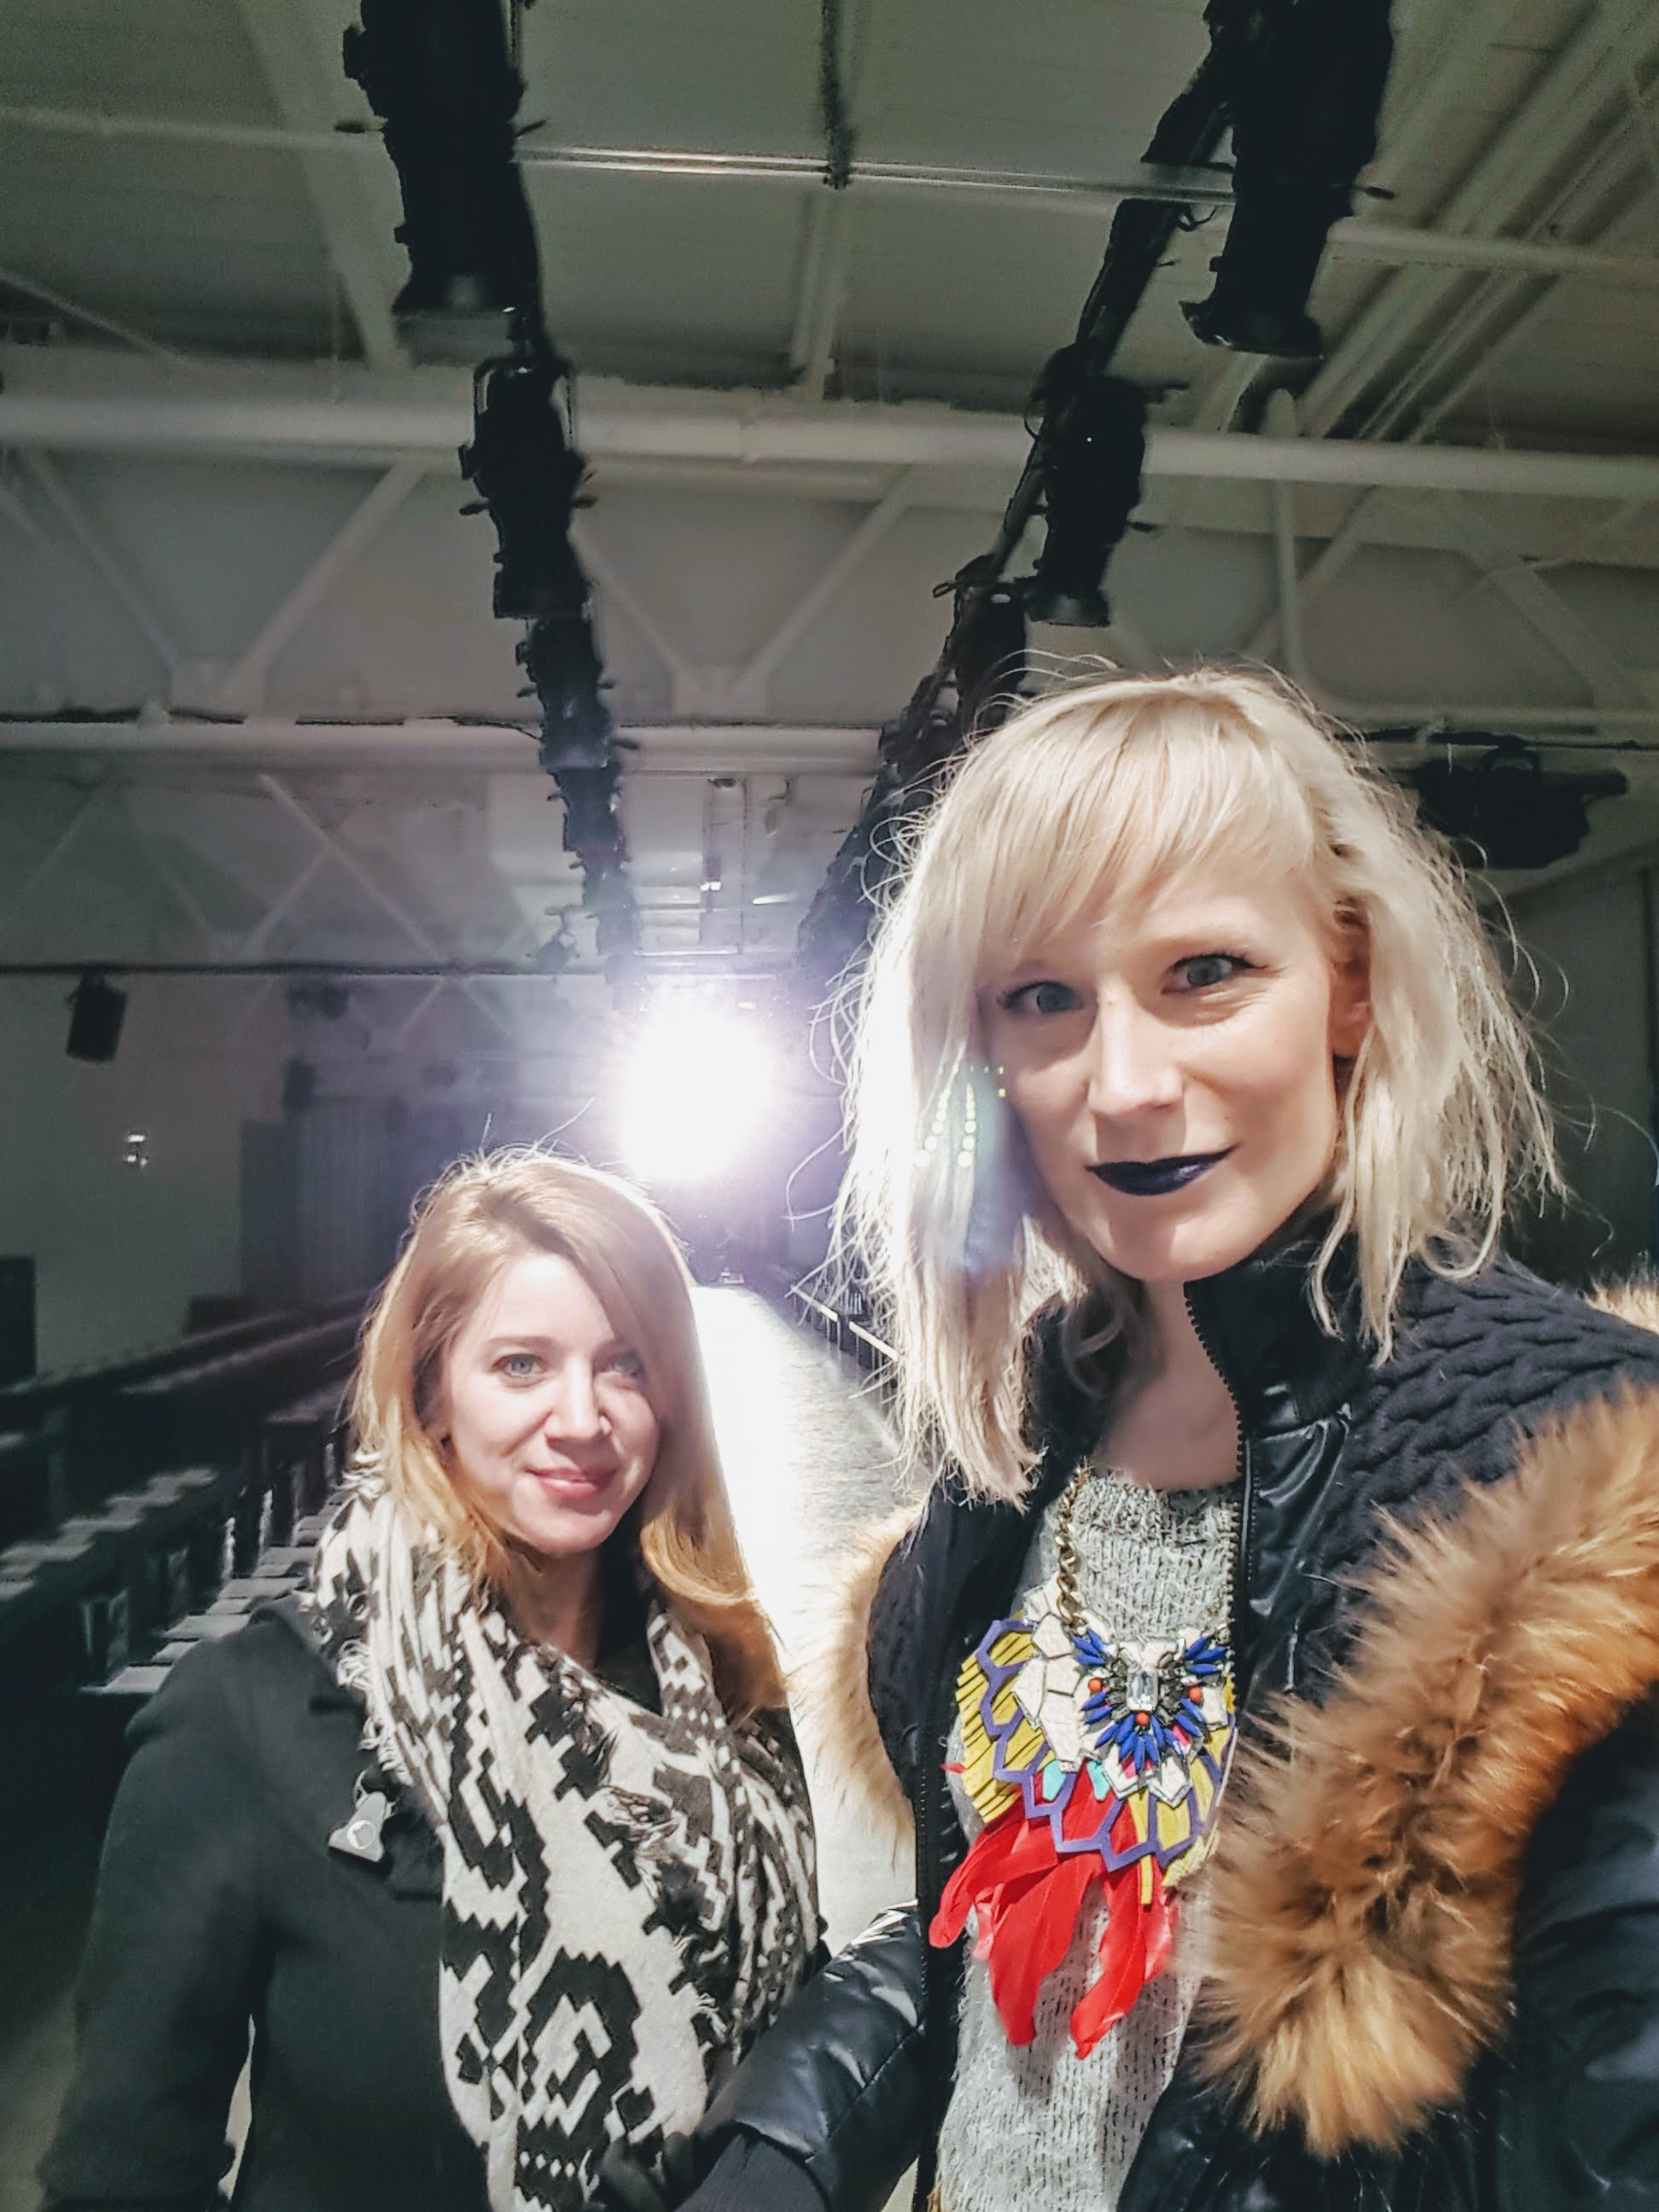 Gals on the runway: Wendy and I used to watch Project Runway devotedly while in college, so you can imagine we were extra giddy sharing this experience.